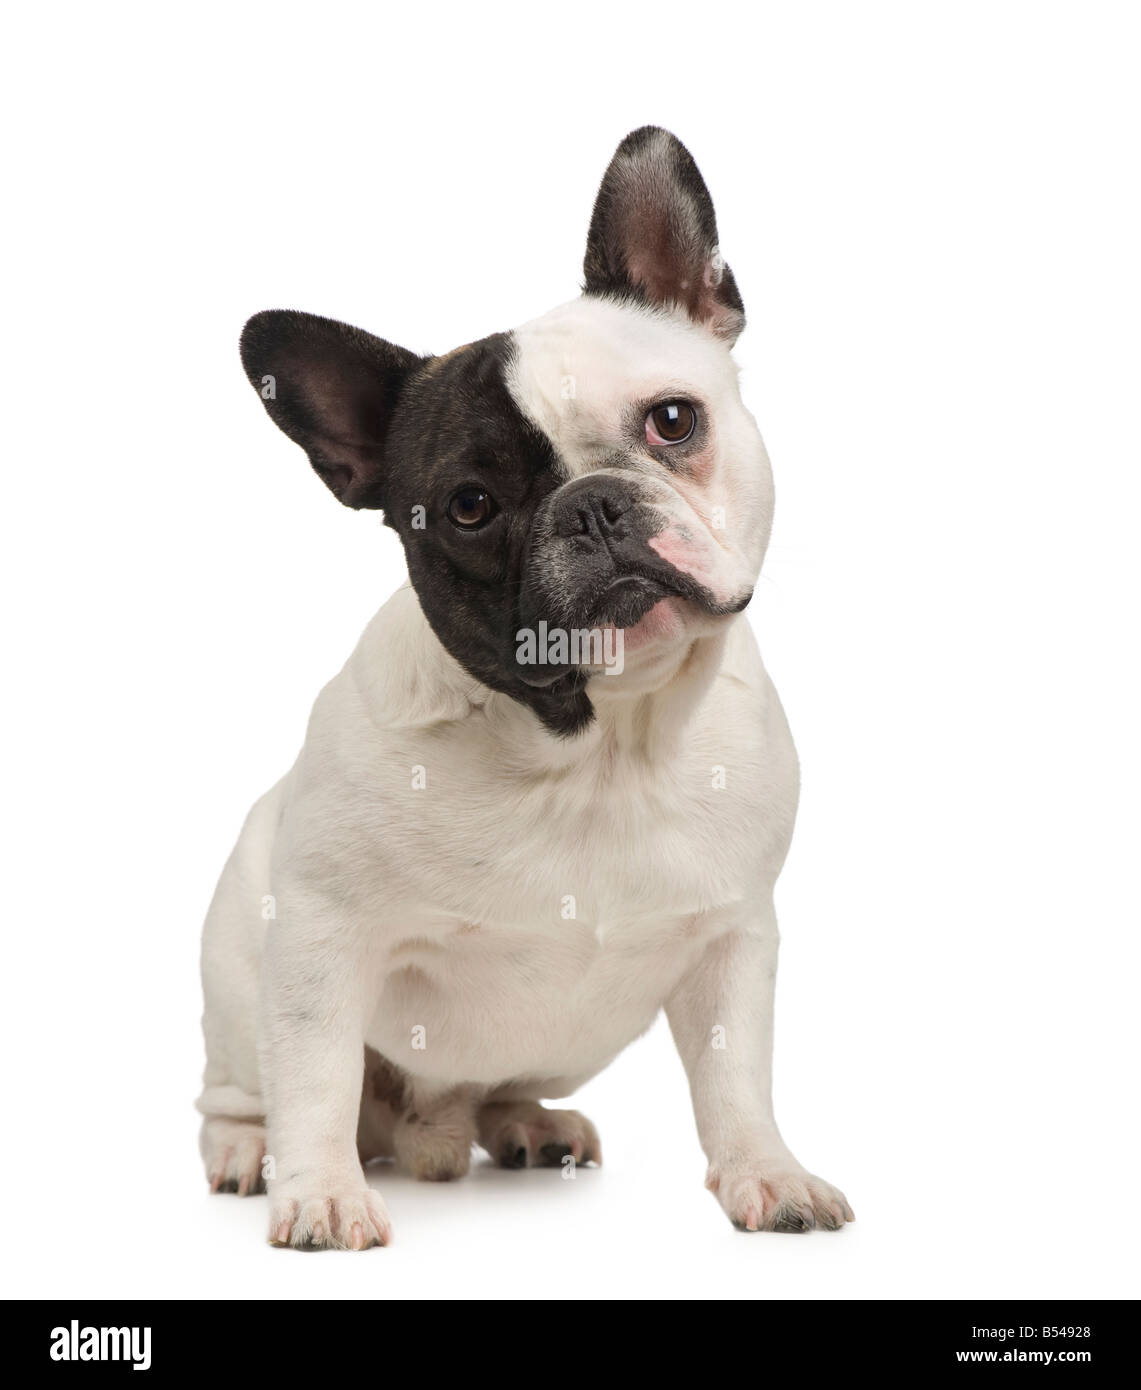 Meses En Frances French Bull Dog On White Imágenes De Stock And French Bull